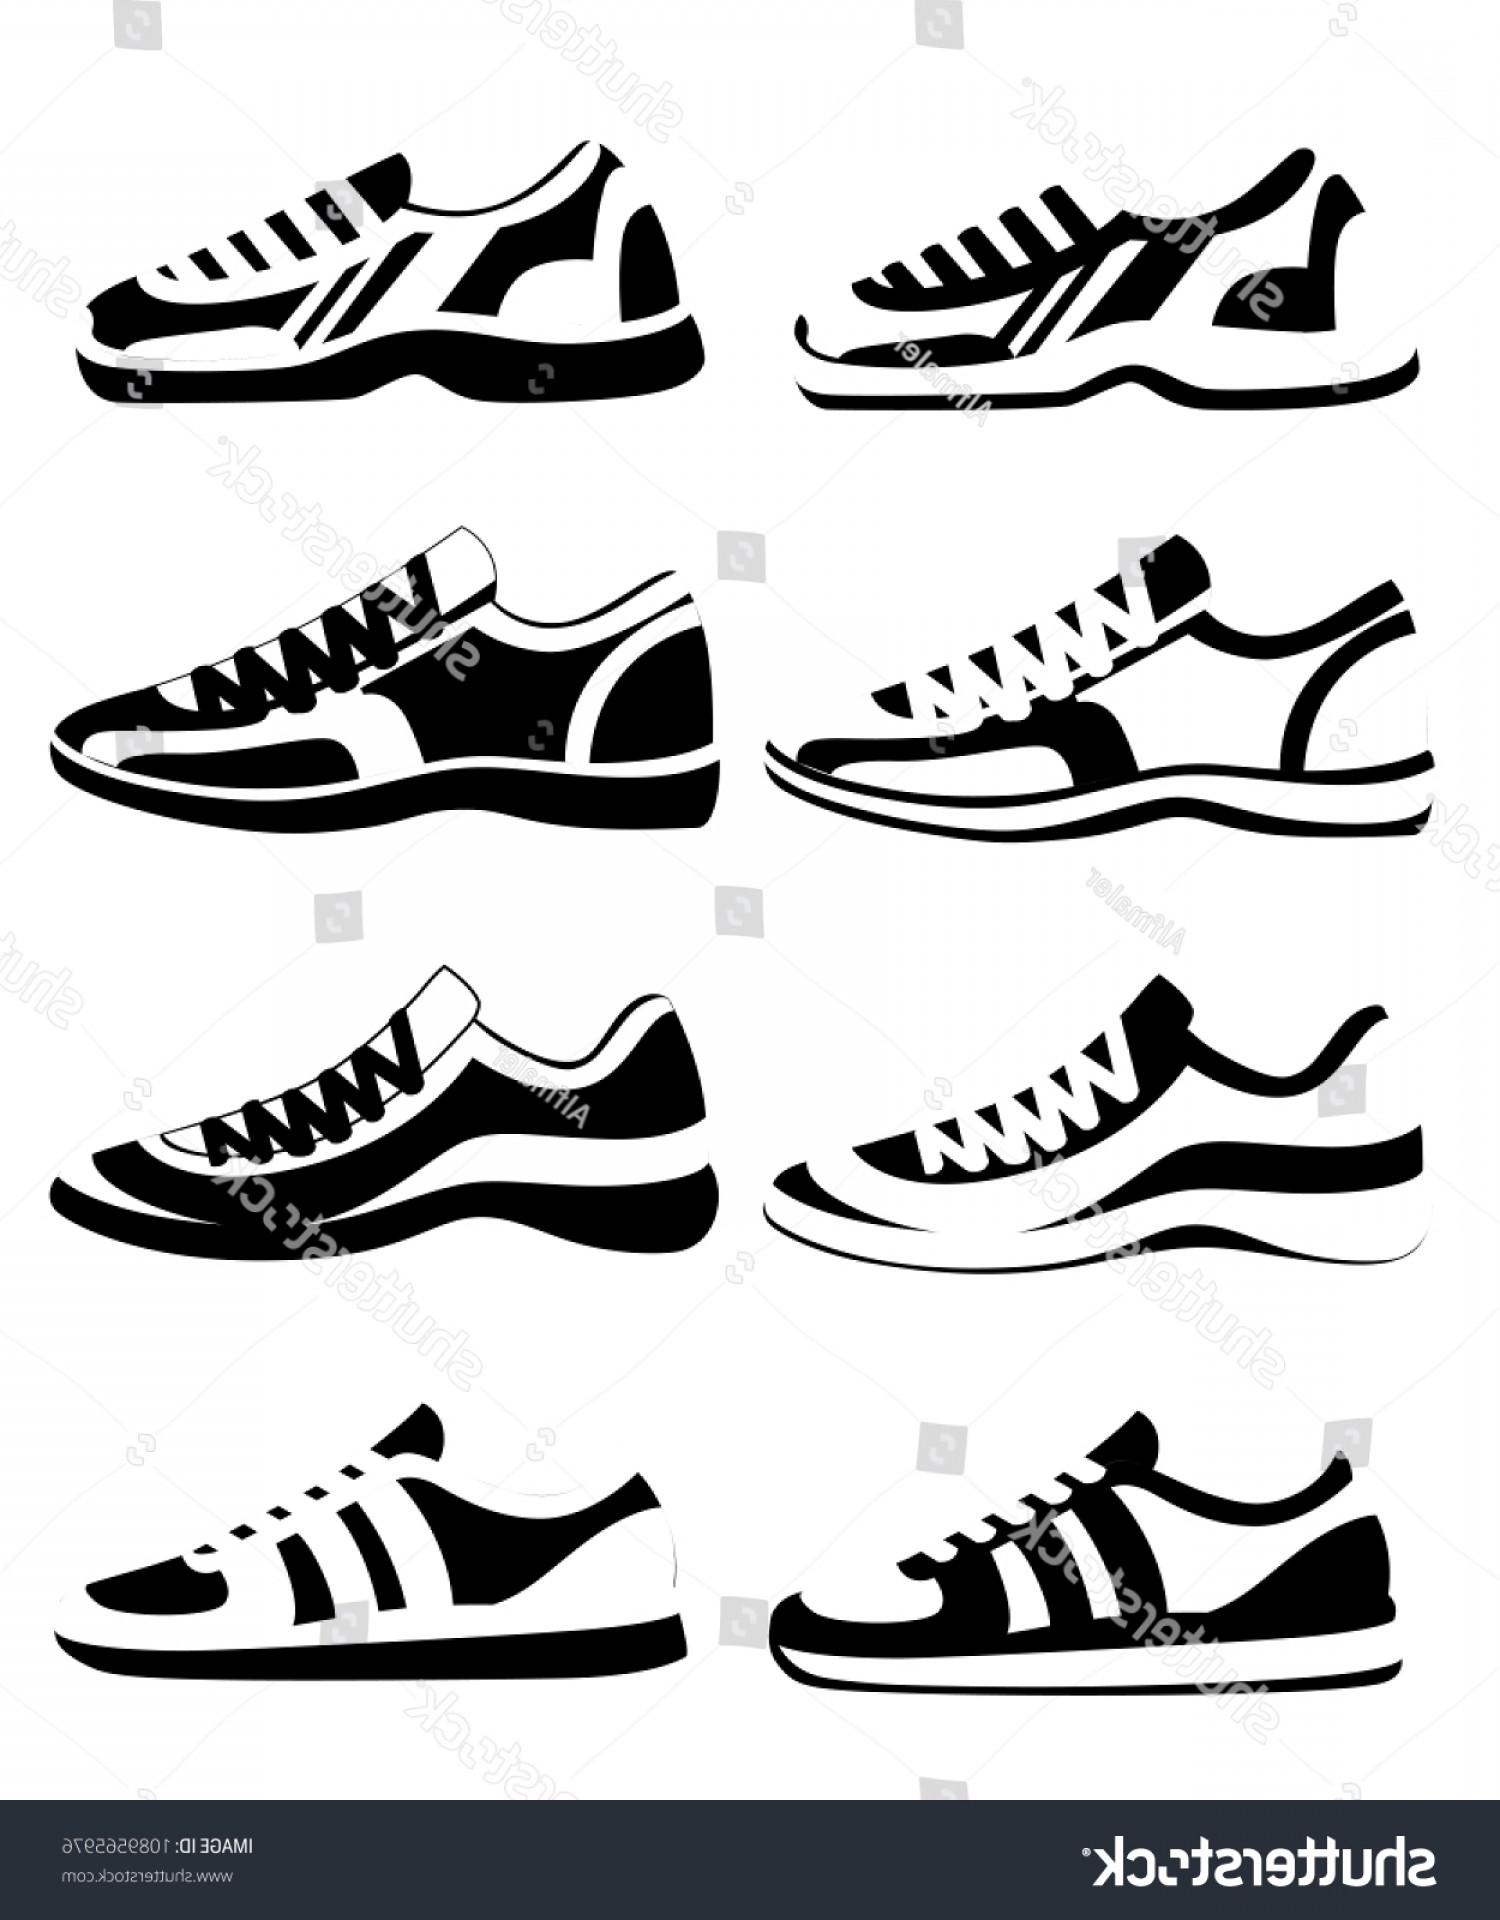 Sneaker Silhouette Vector: Black Silhouette Sneaker Shoe Athletic Sneakers